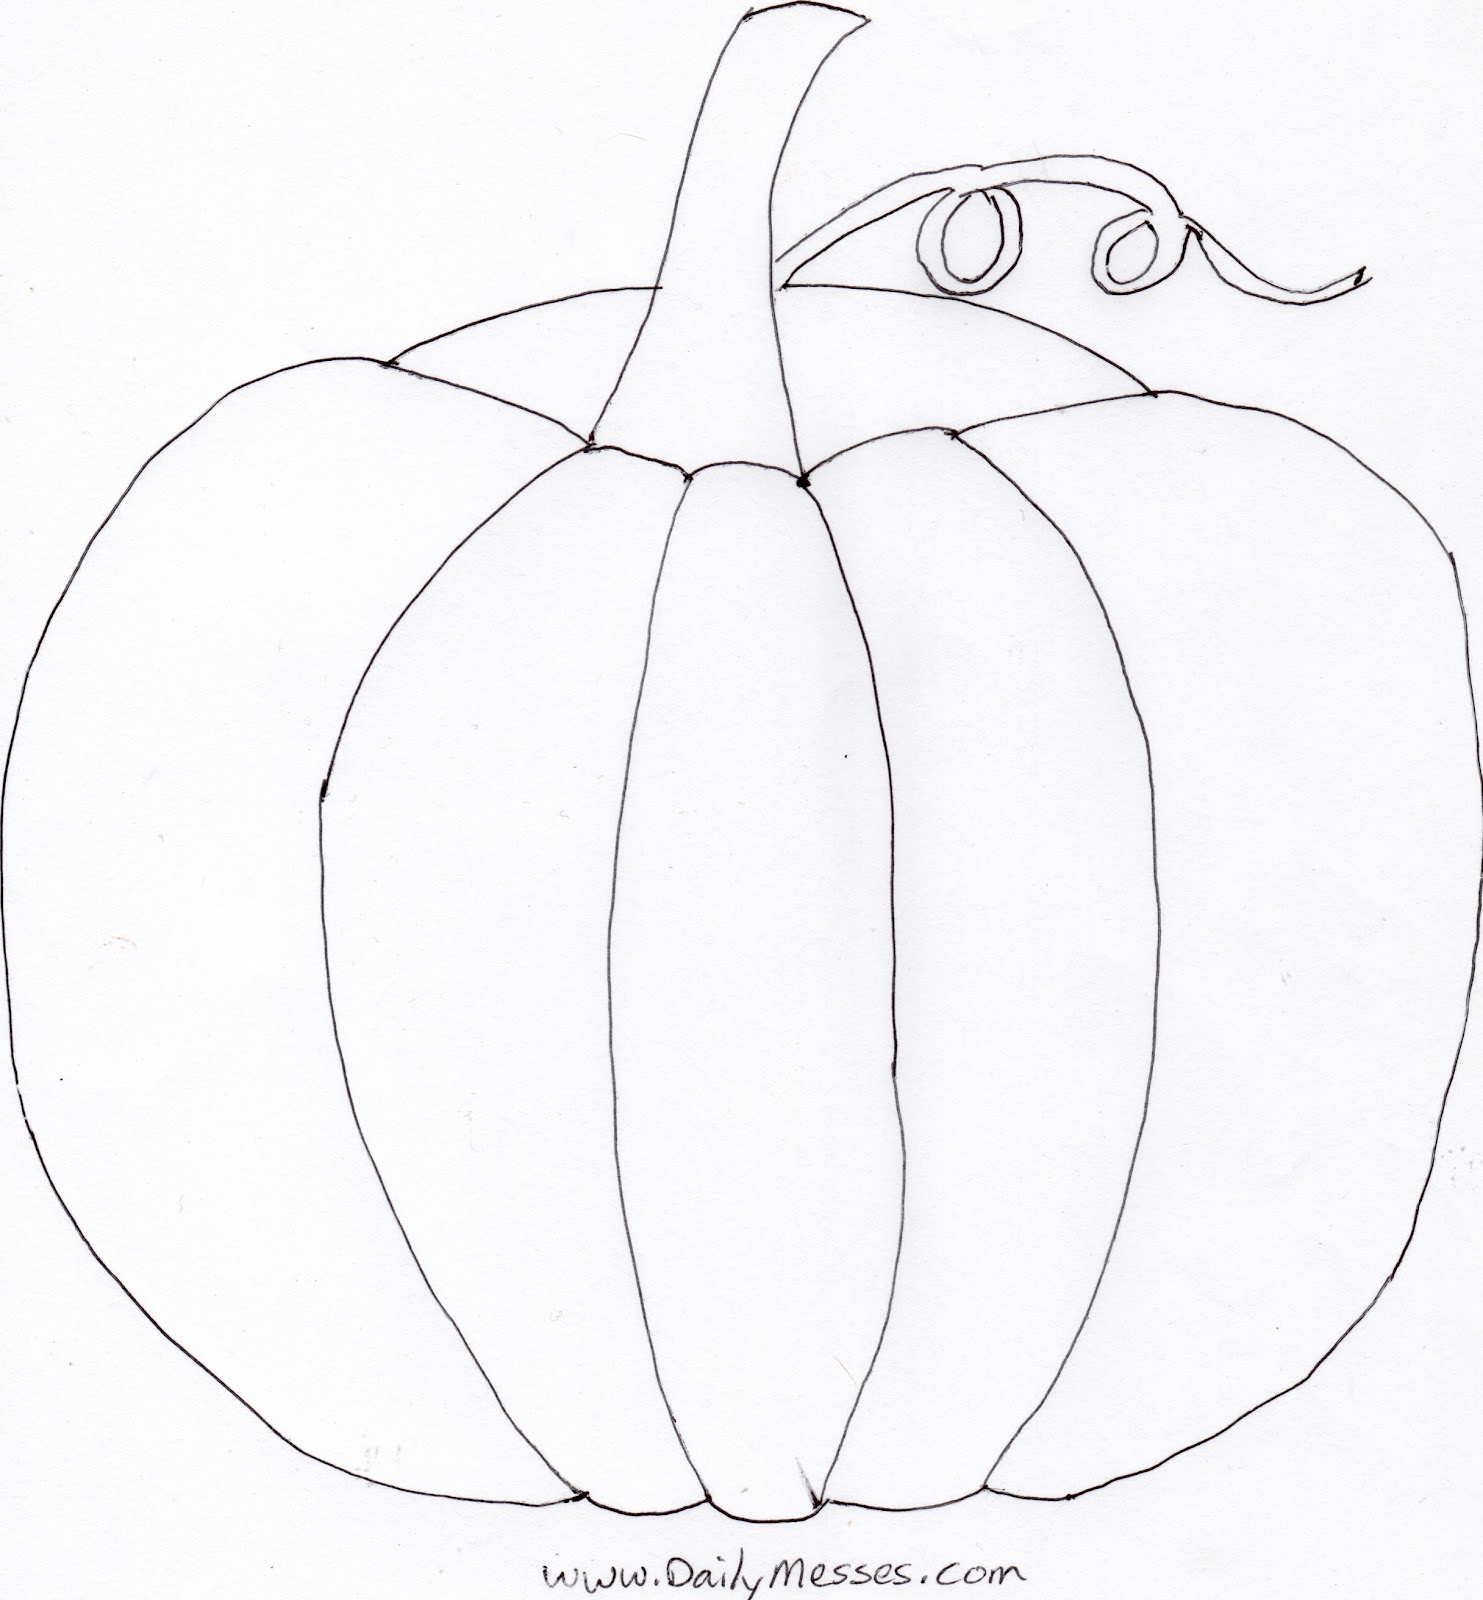 pumpkin cut out coloring pages - photo#18